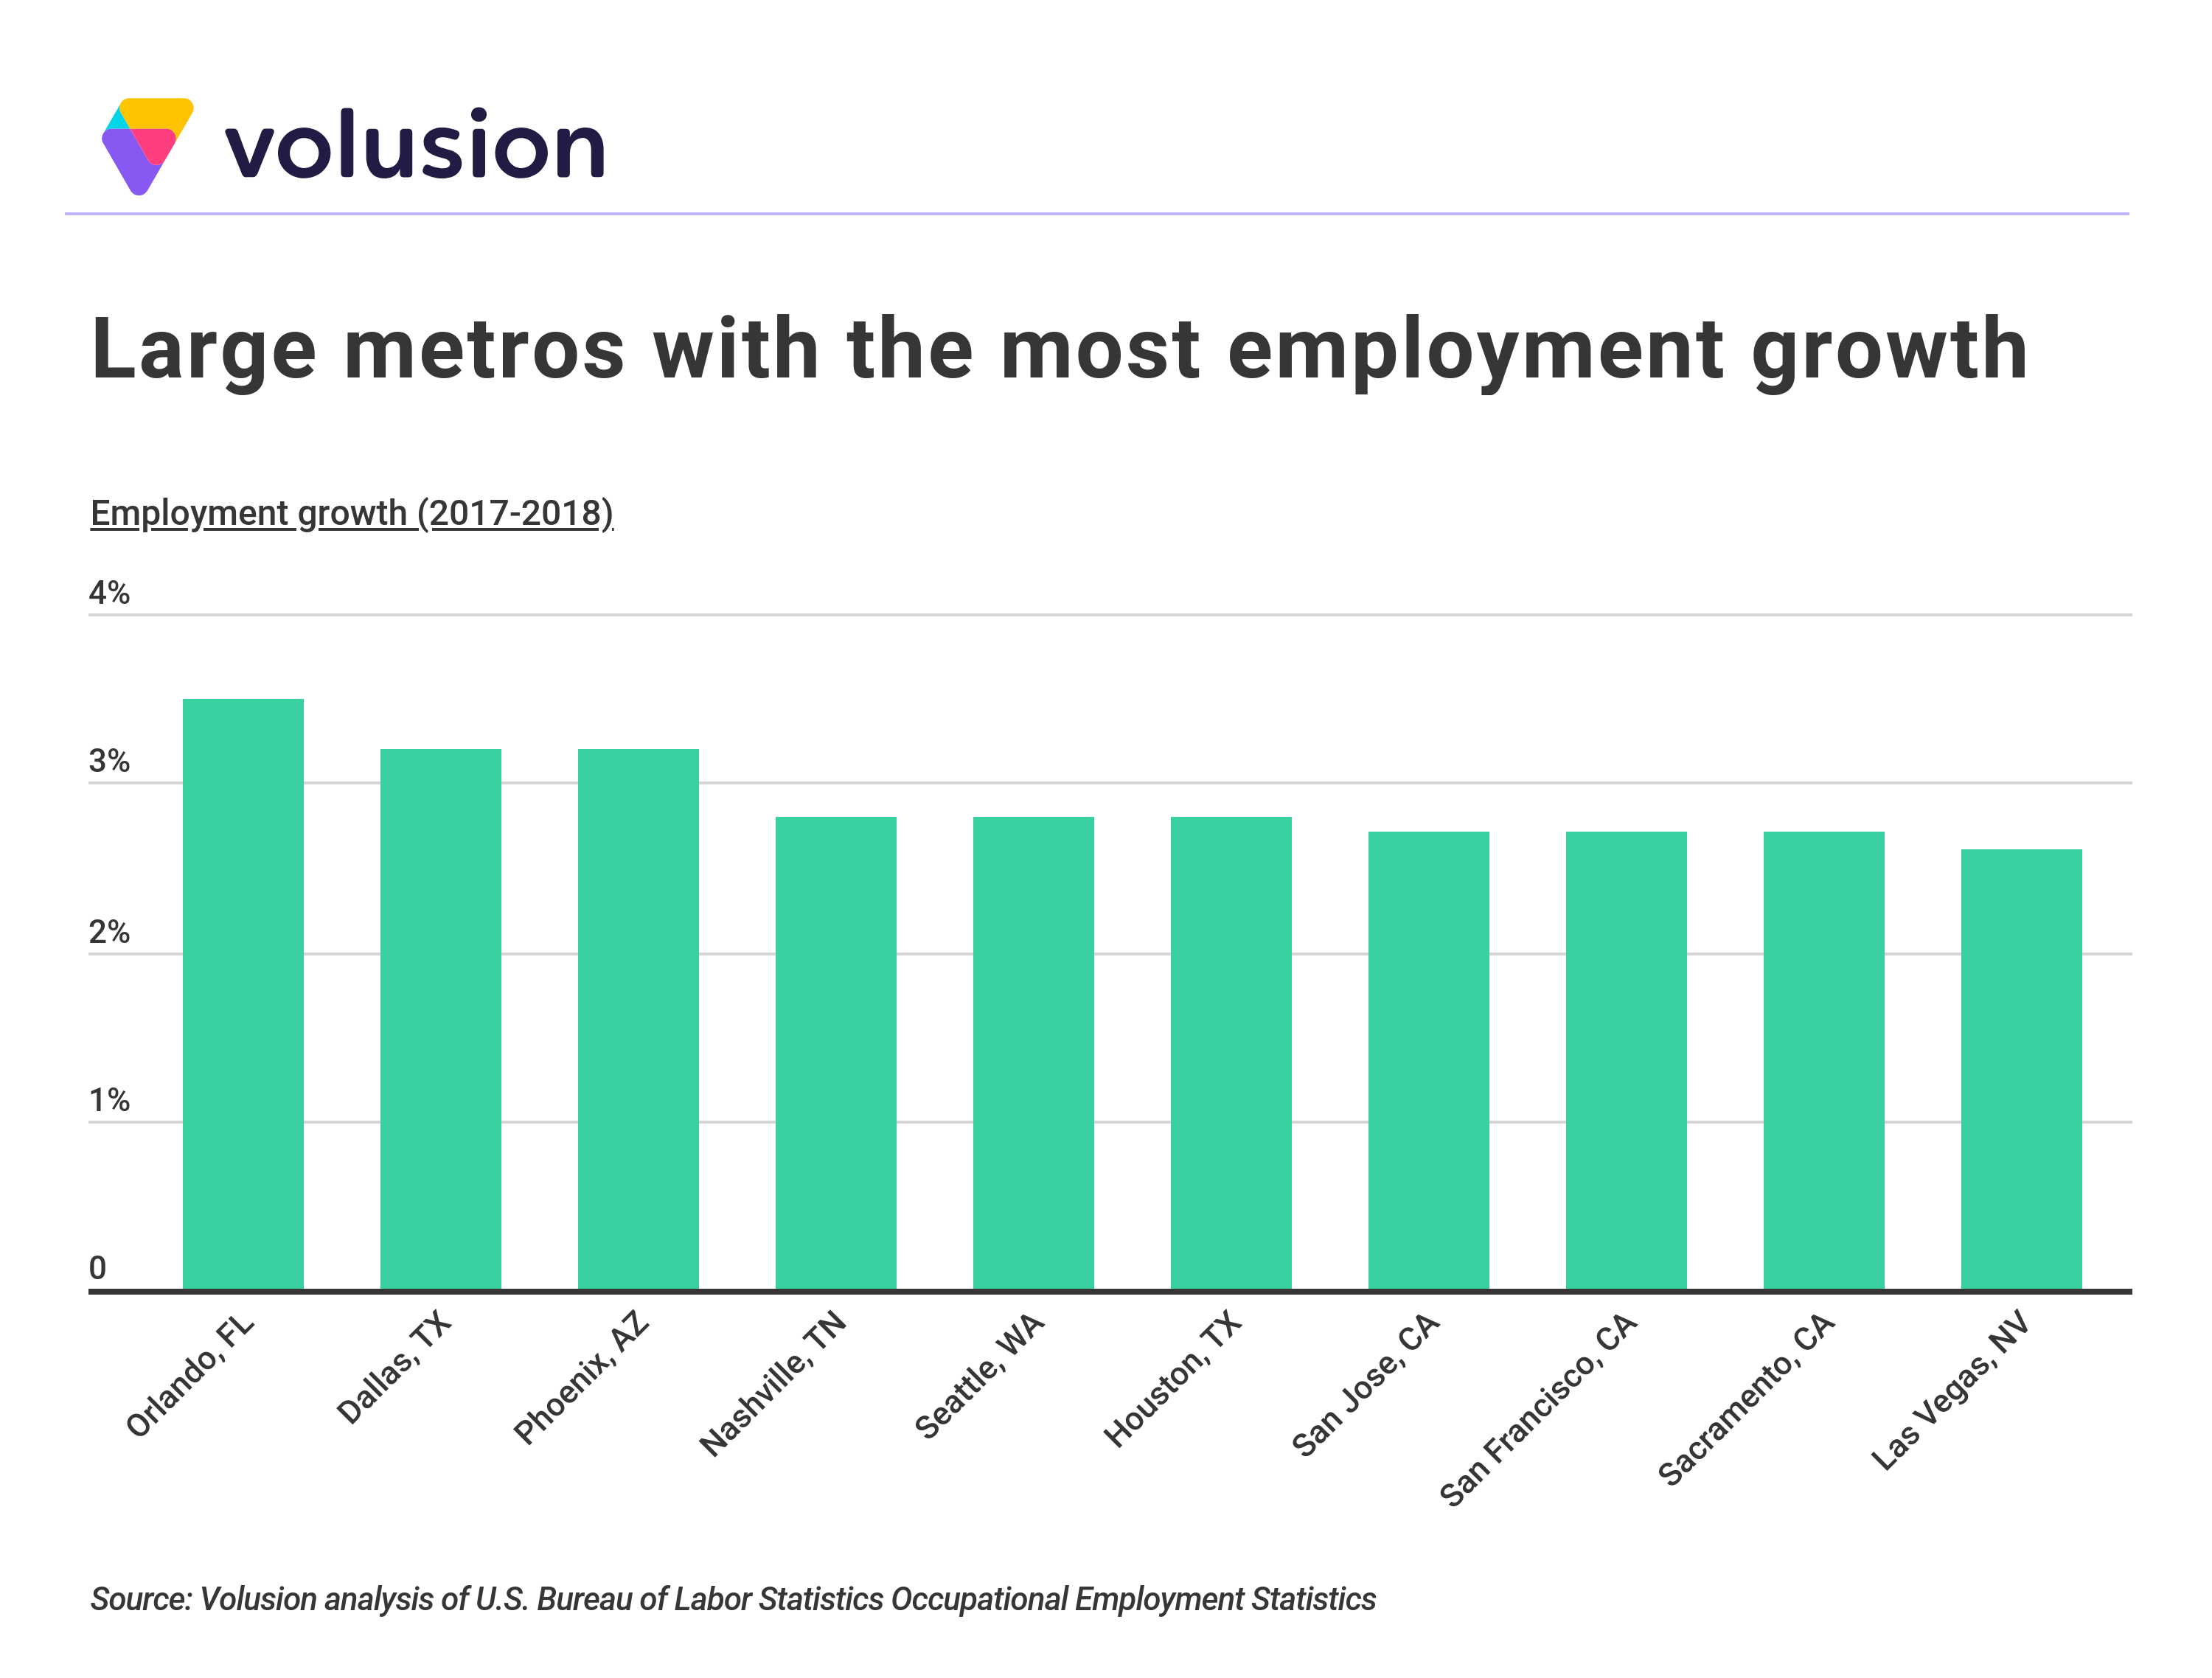 Bar graph showing percentile employment growth from 2017-2018